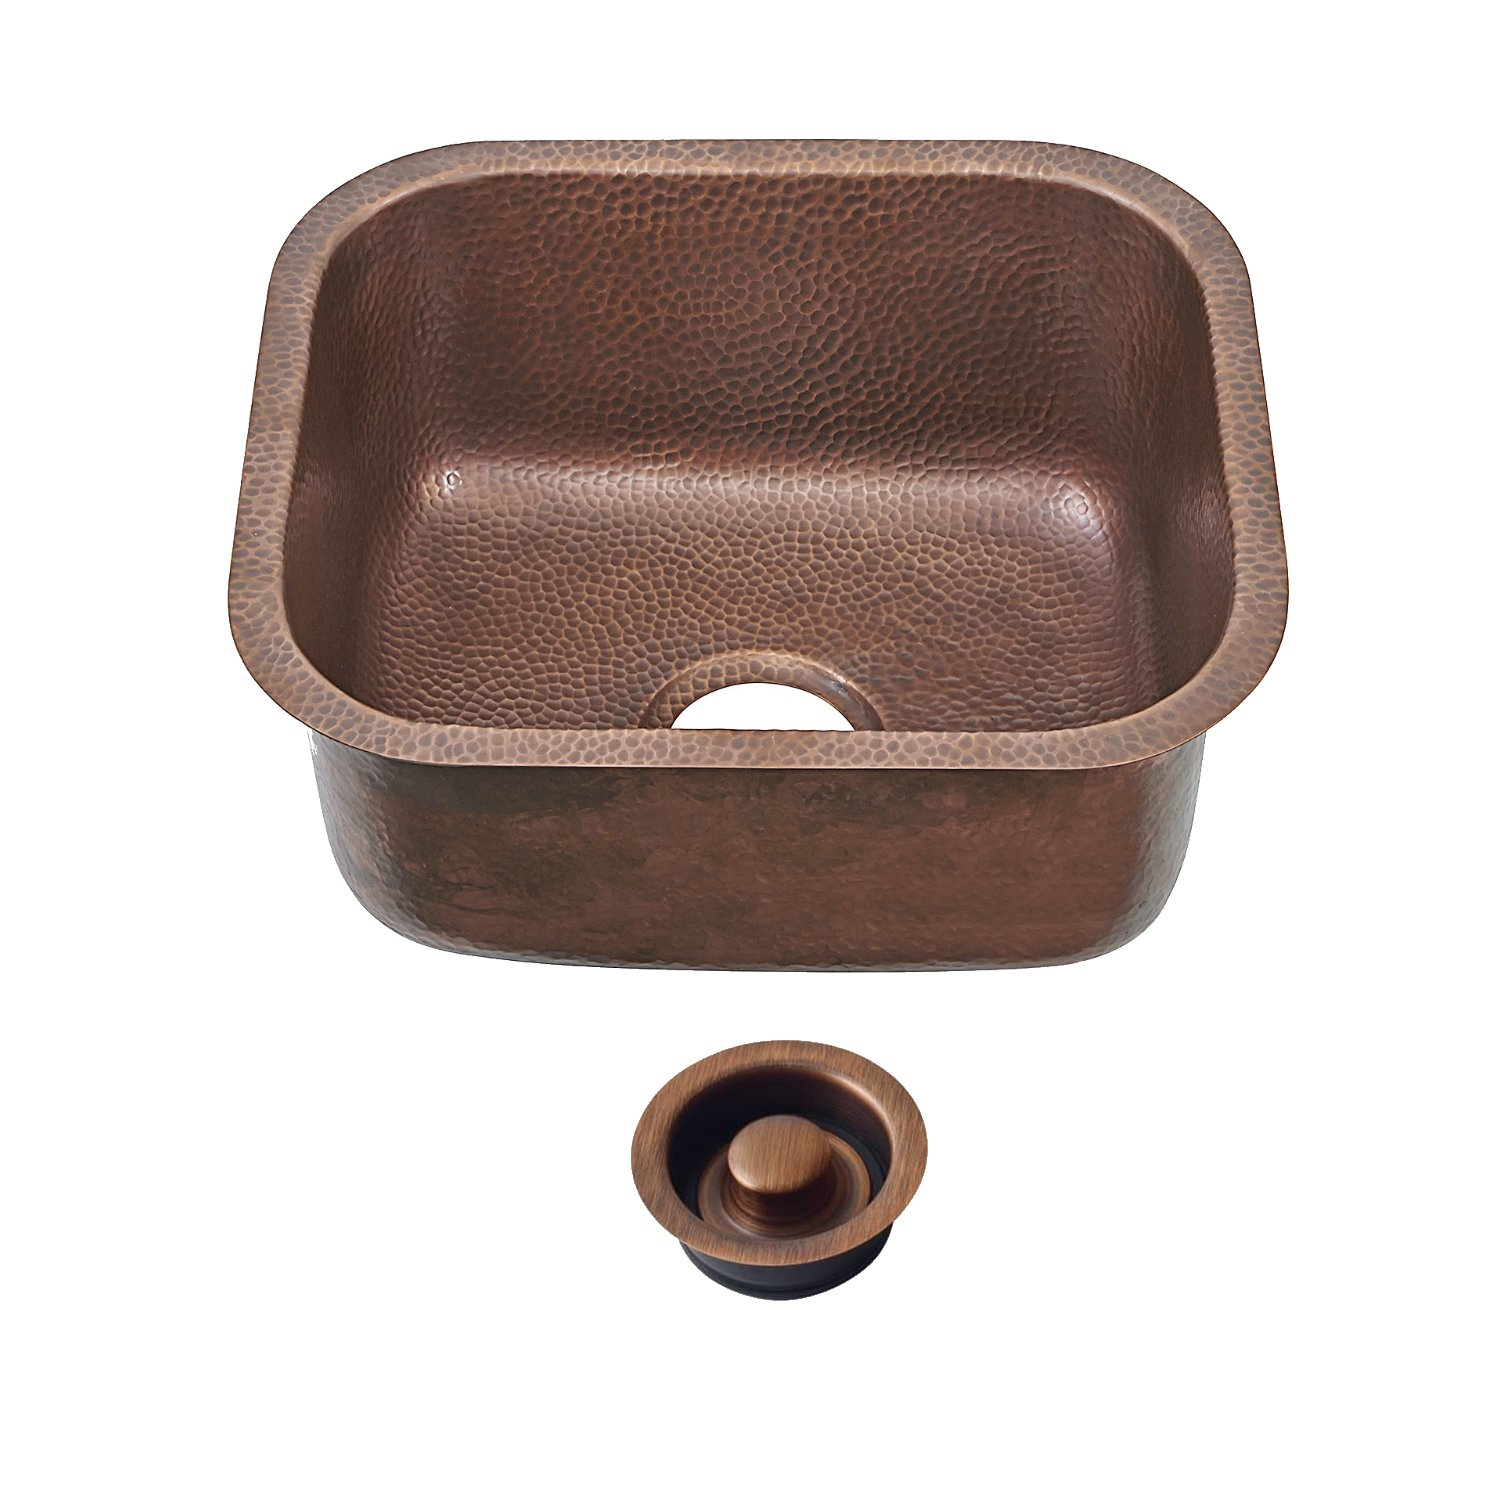 Sinkology SP503-18AC-AMZ-D Sisley Pro Undermount Bar Prep 18.5'' Sink Kit With Disposal Flange, 18.5'' x 16.5'' x 9'', Antique Copper